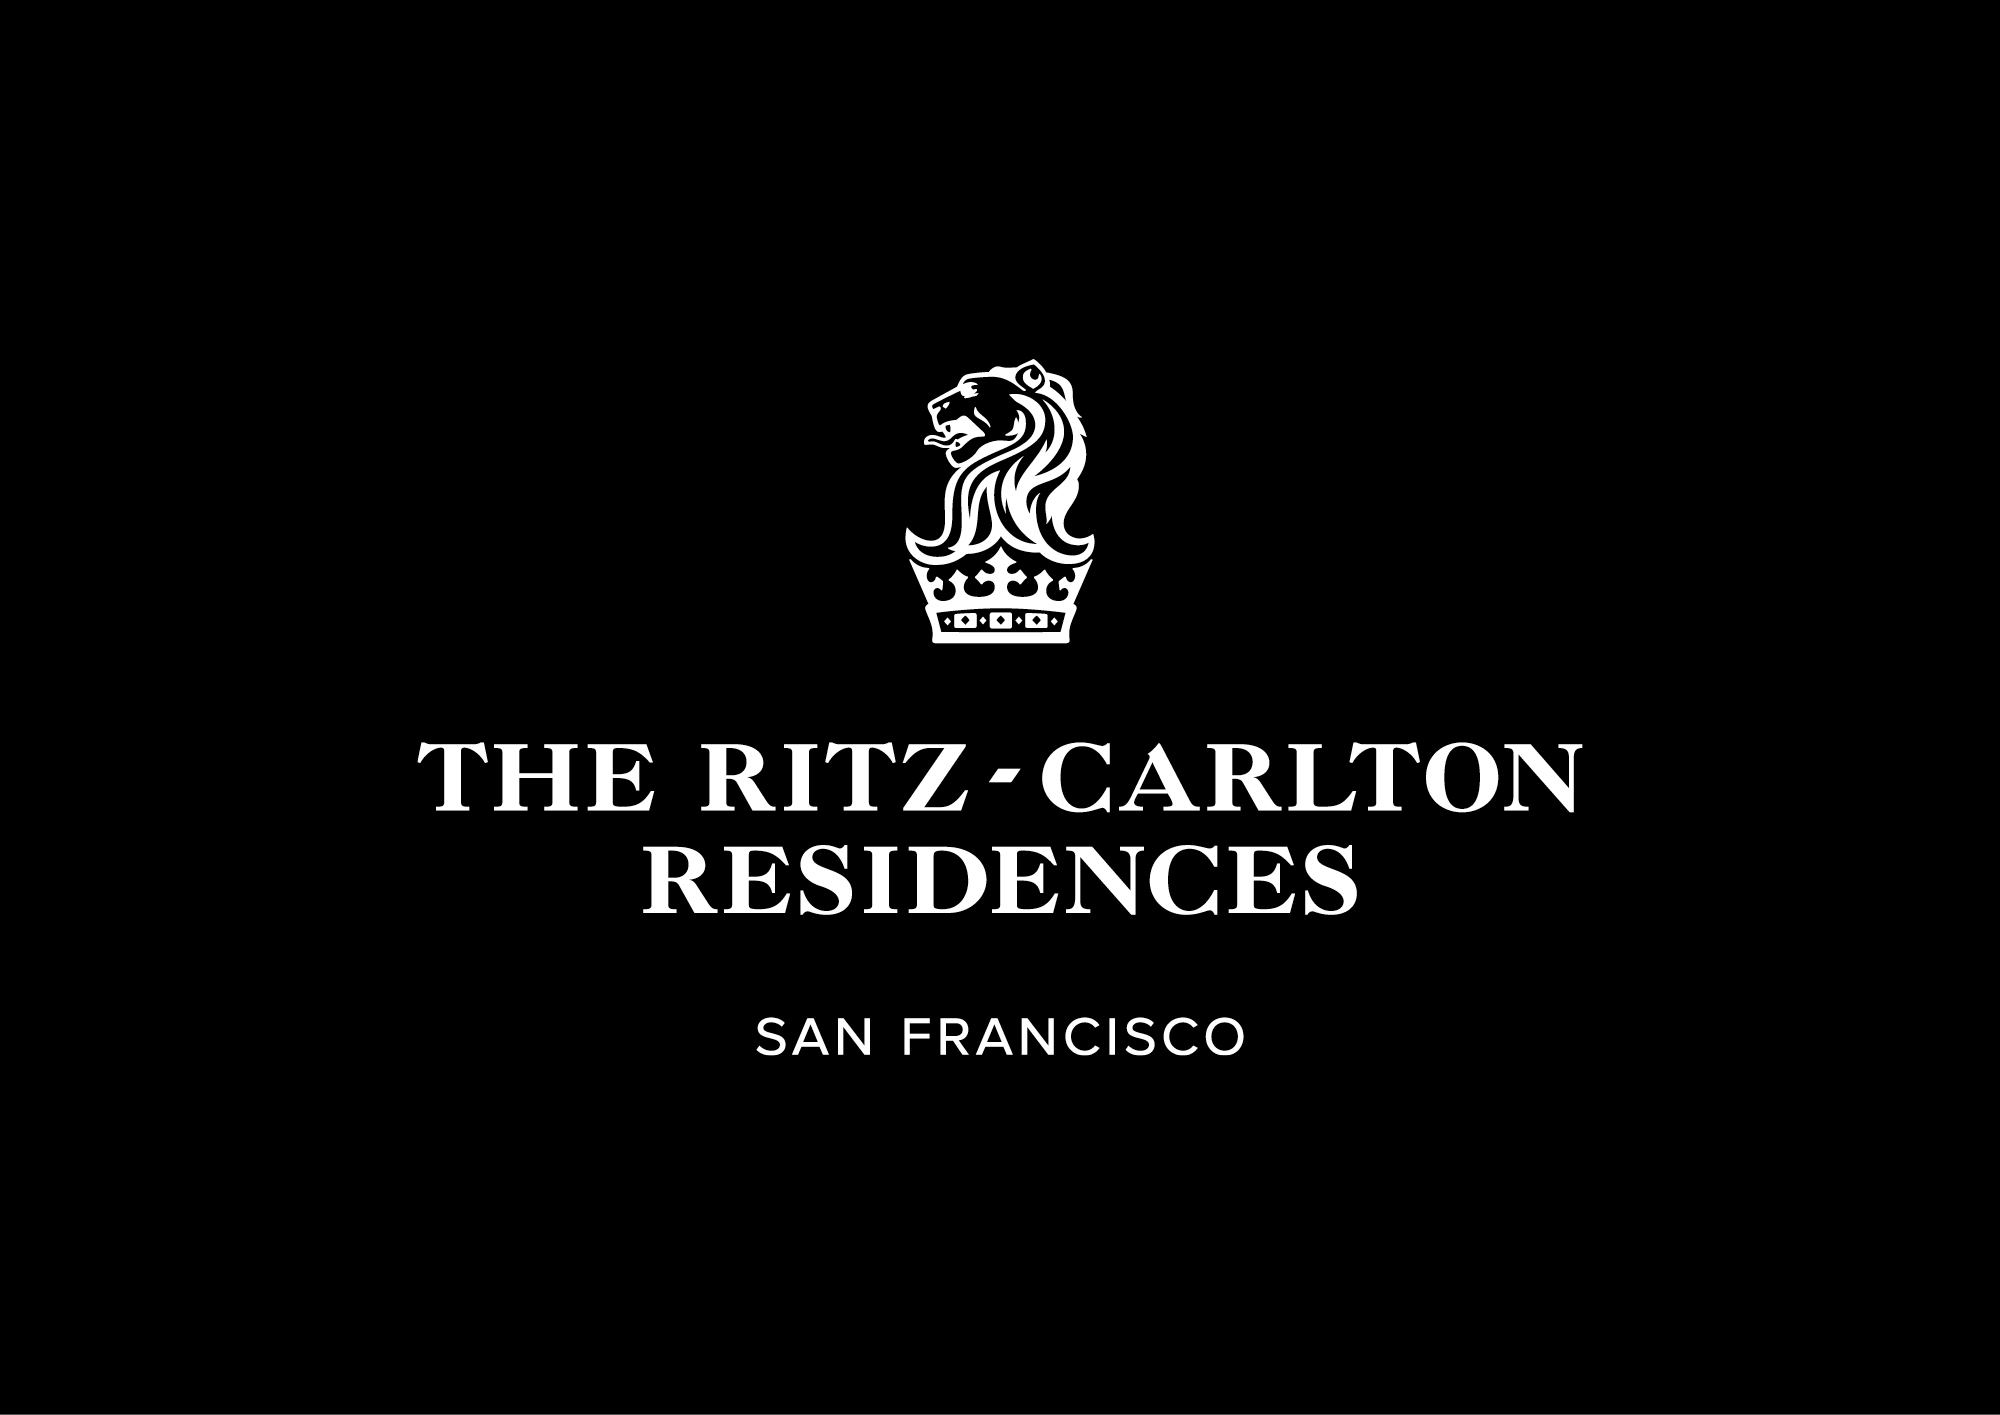 The Ritz-Carlton Residences, San Francisco